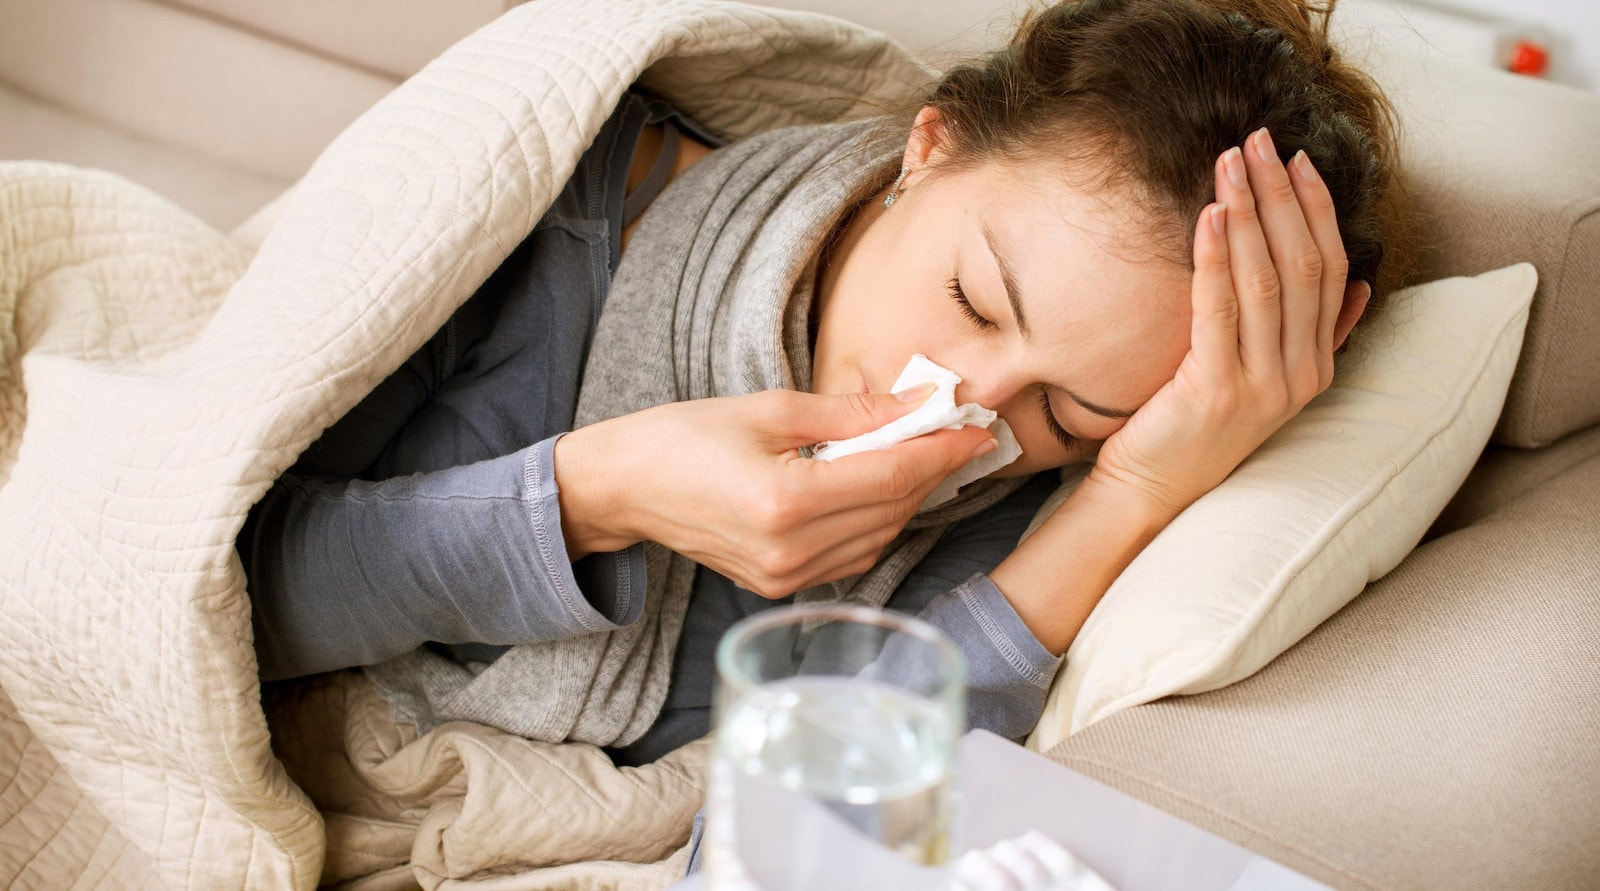 Assists in the treatment of flu, bronchitis and pneumonia